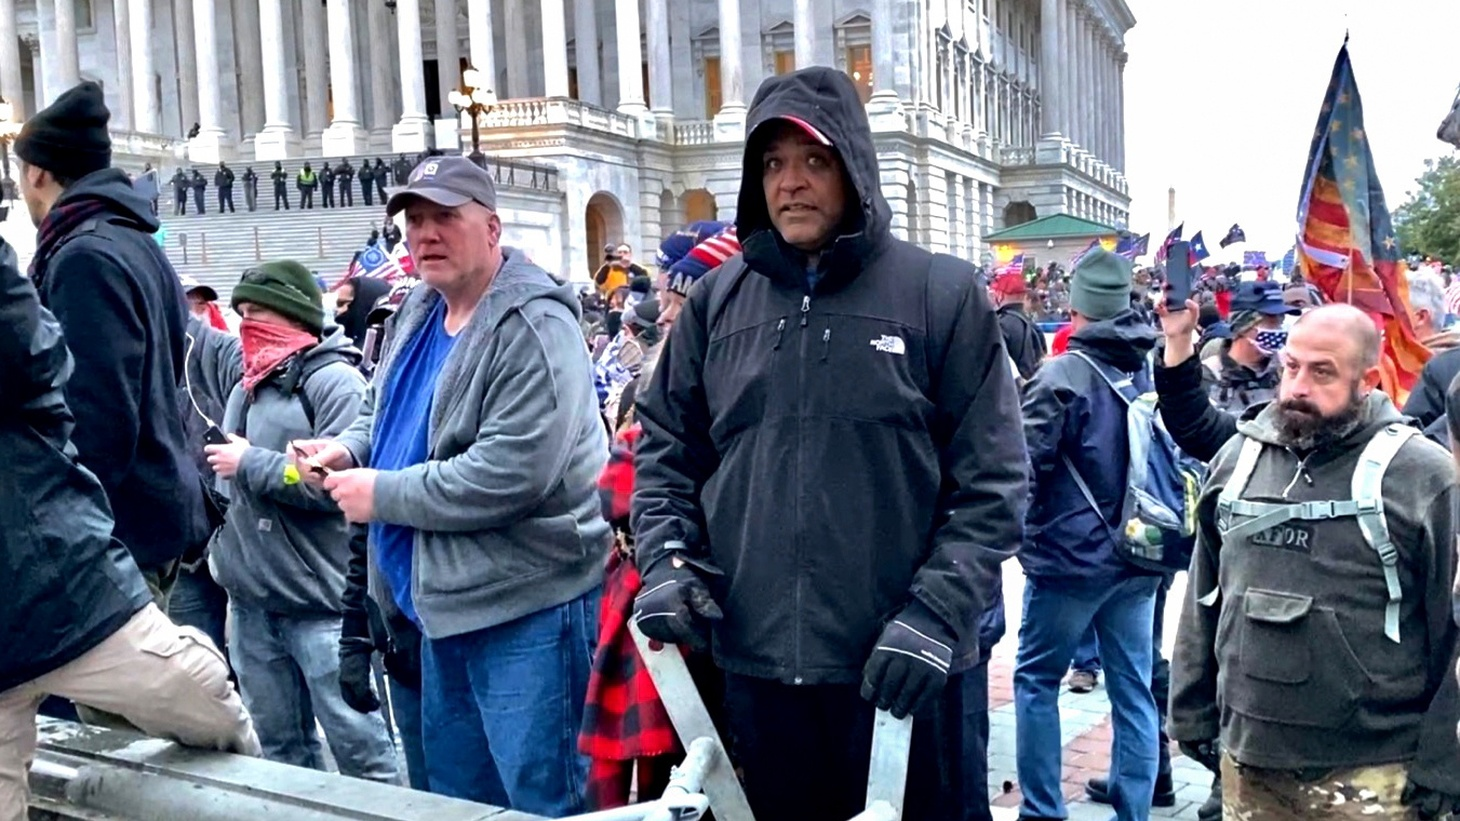 A man (center in black coat) identified by U.S. federal prosecutors as Shane Jason Woods of Auburn, Illinois is seen in a frame grab from video shot during the January 6, 2021 assault on the U.S. Capitol, moments before climbing over a barricade and attacking members of the news media and destroying camera gear. Woods has been charged with assaulting both law enforcement officers and members of the media in an arrest and prosecution announced by U.S. Attorney General Merrick Garland in Washington, U.S. on June 24, 2021.